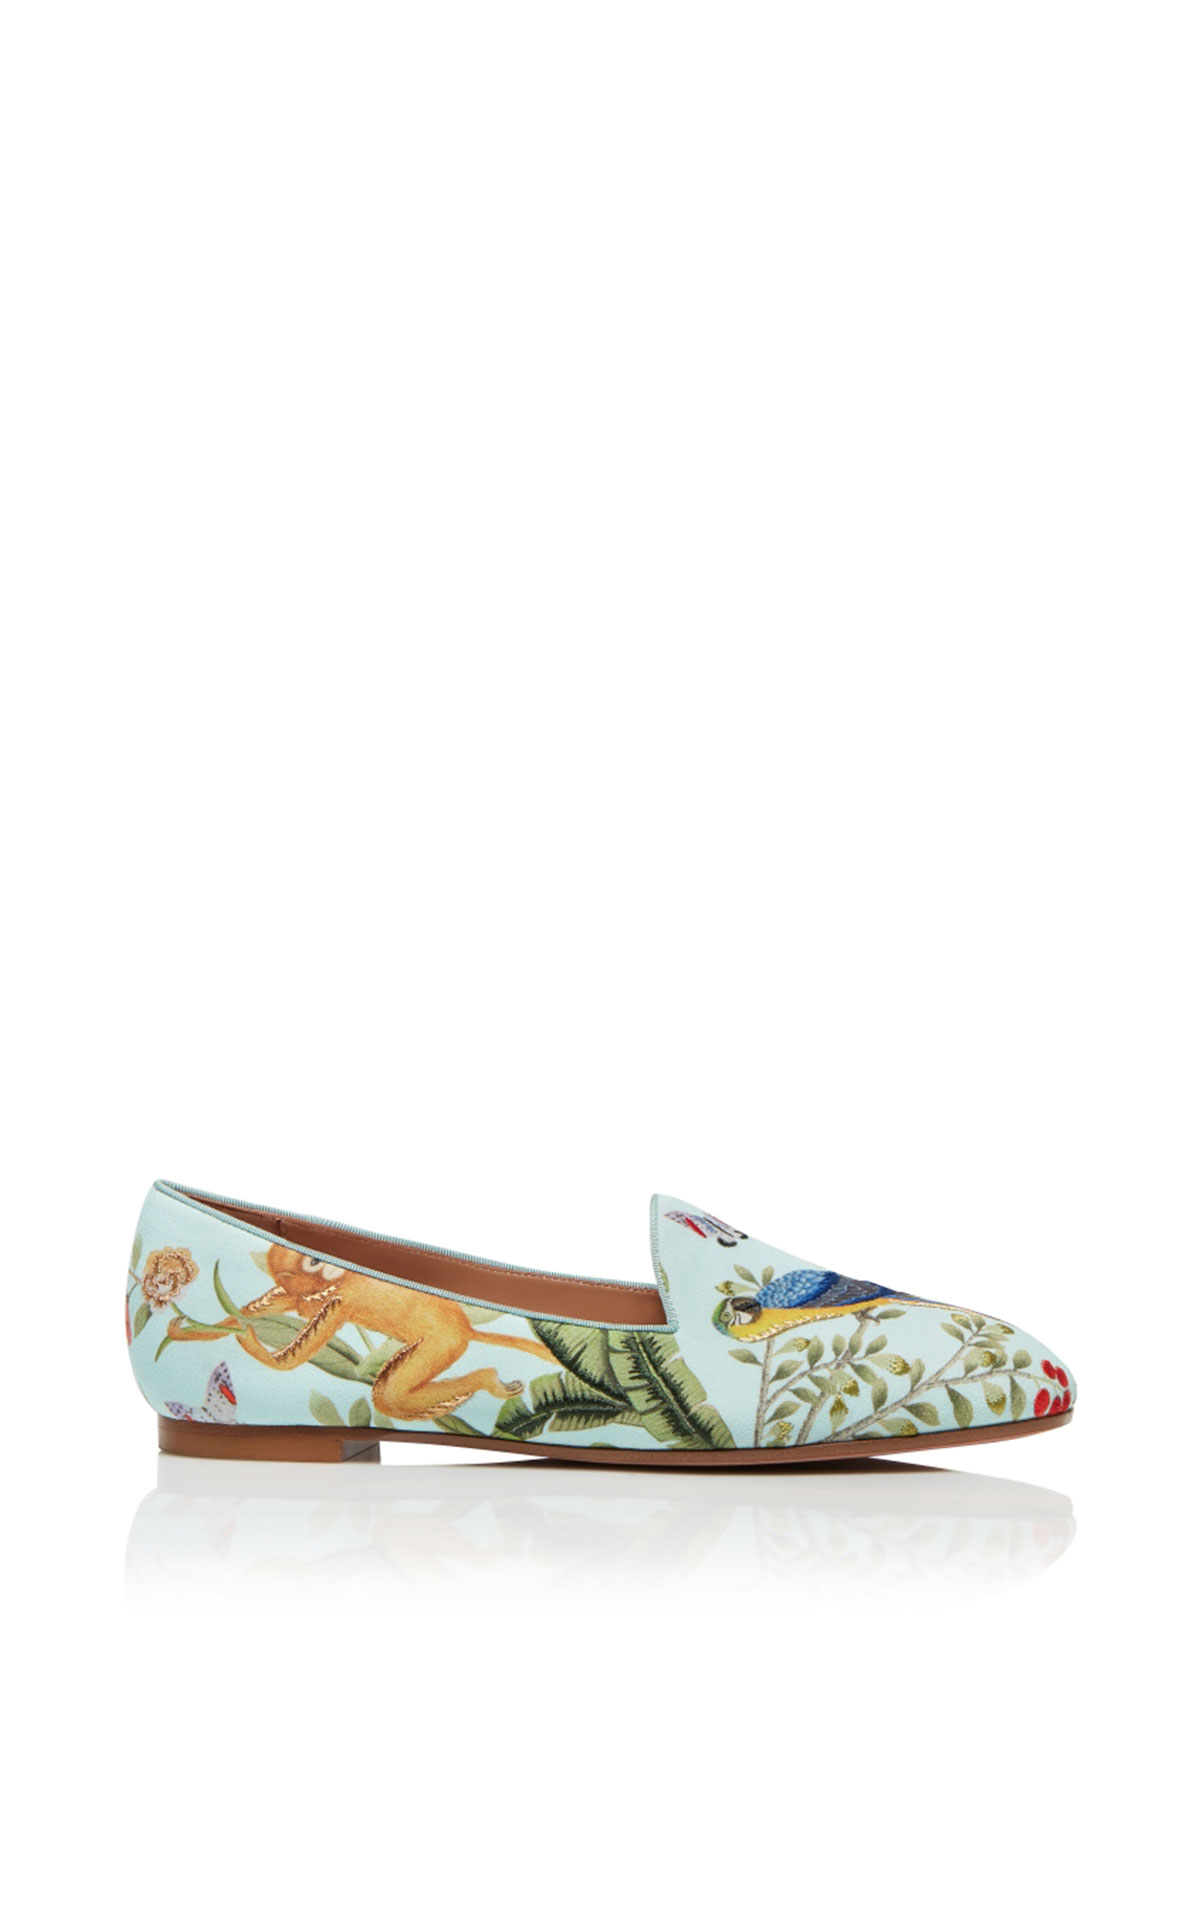 Aquazzura Amazonia de gournay loafer from Bicester Village